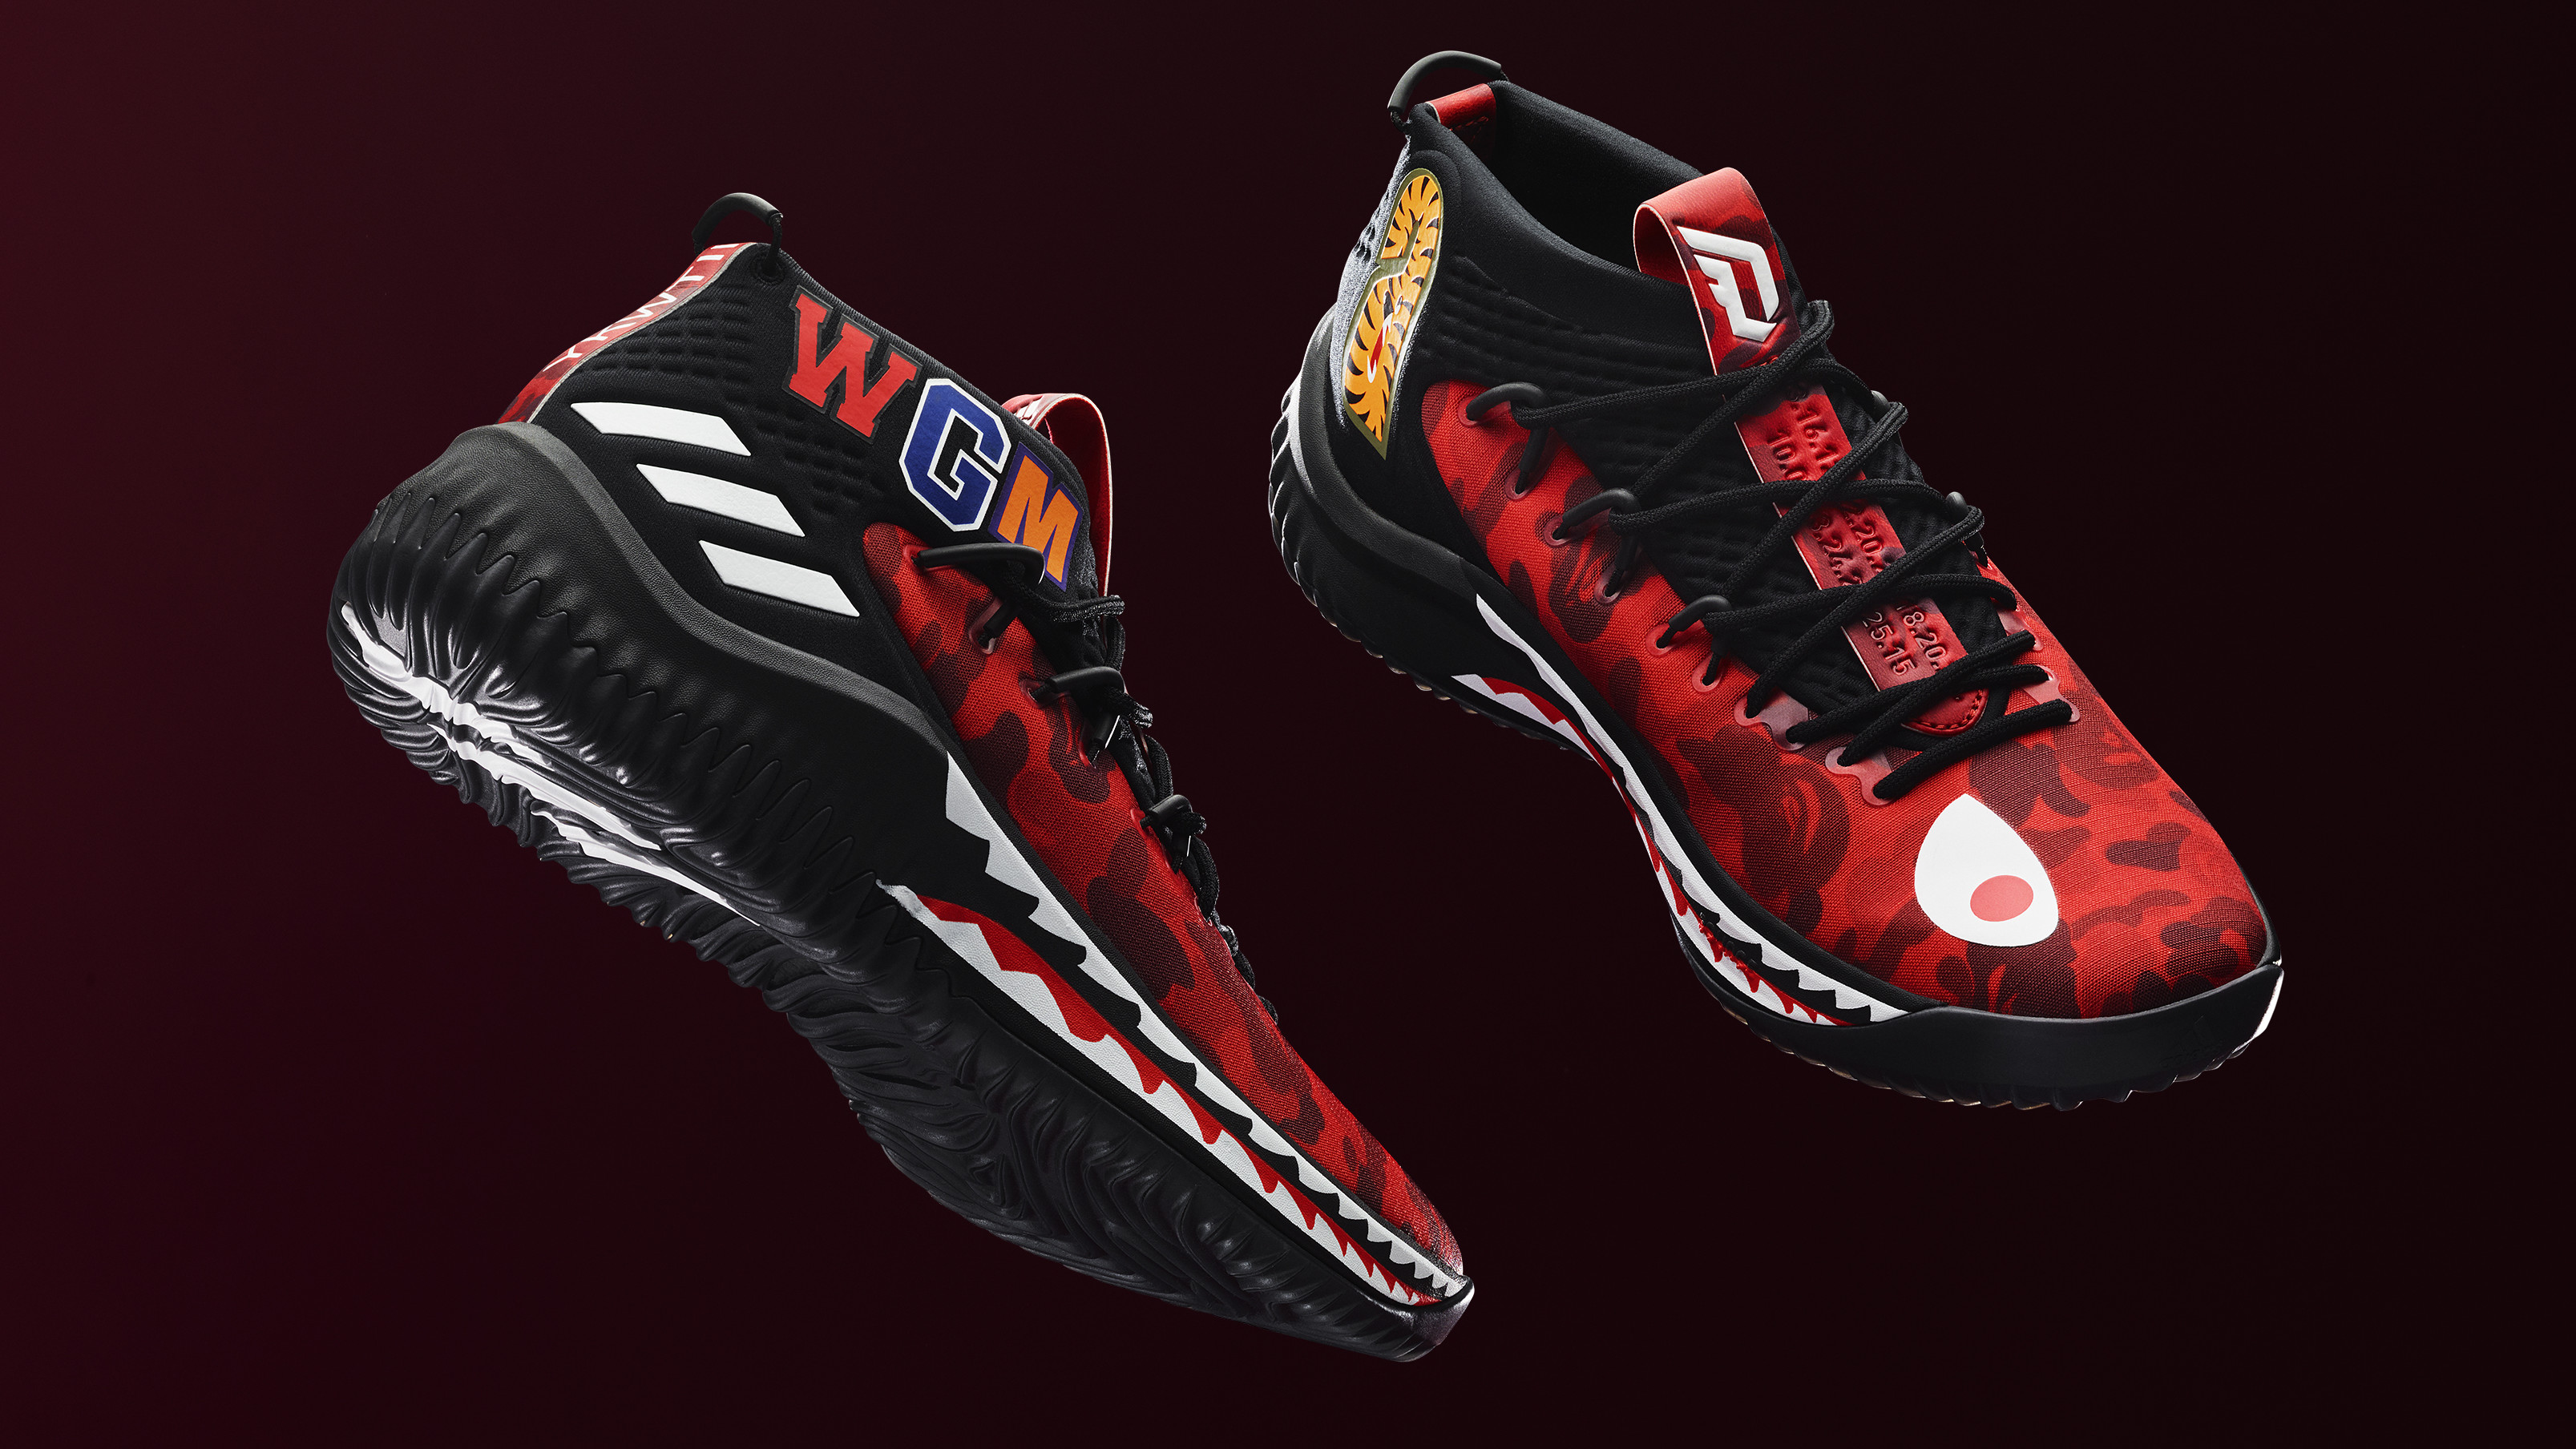 timeless design a7b42 9565f Adidas Dame 4 x Bape Releasing in Red on Feb. 16, 2018.  Sol